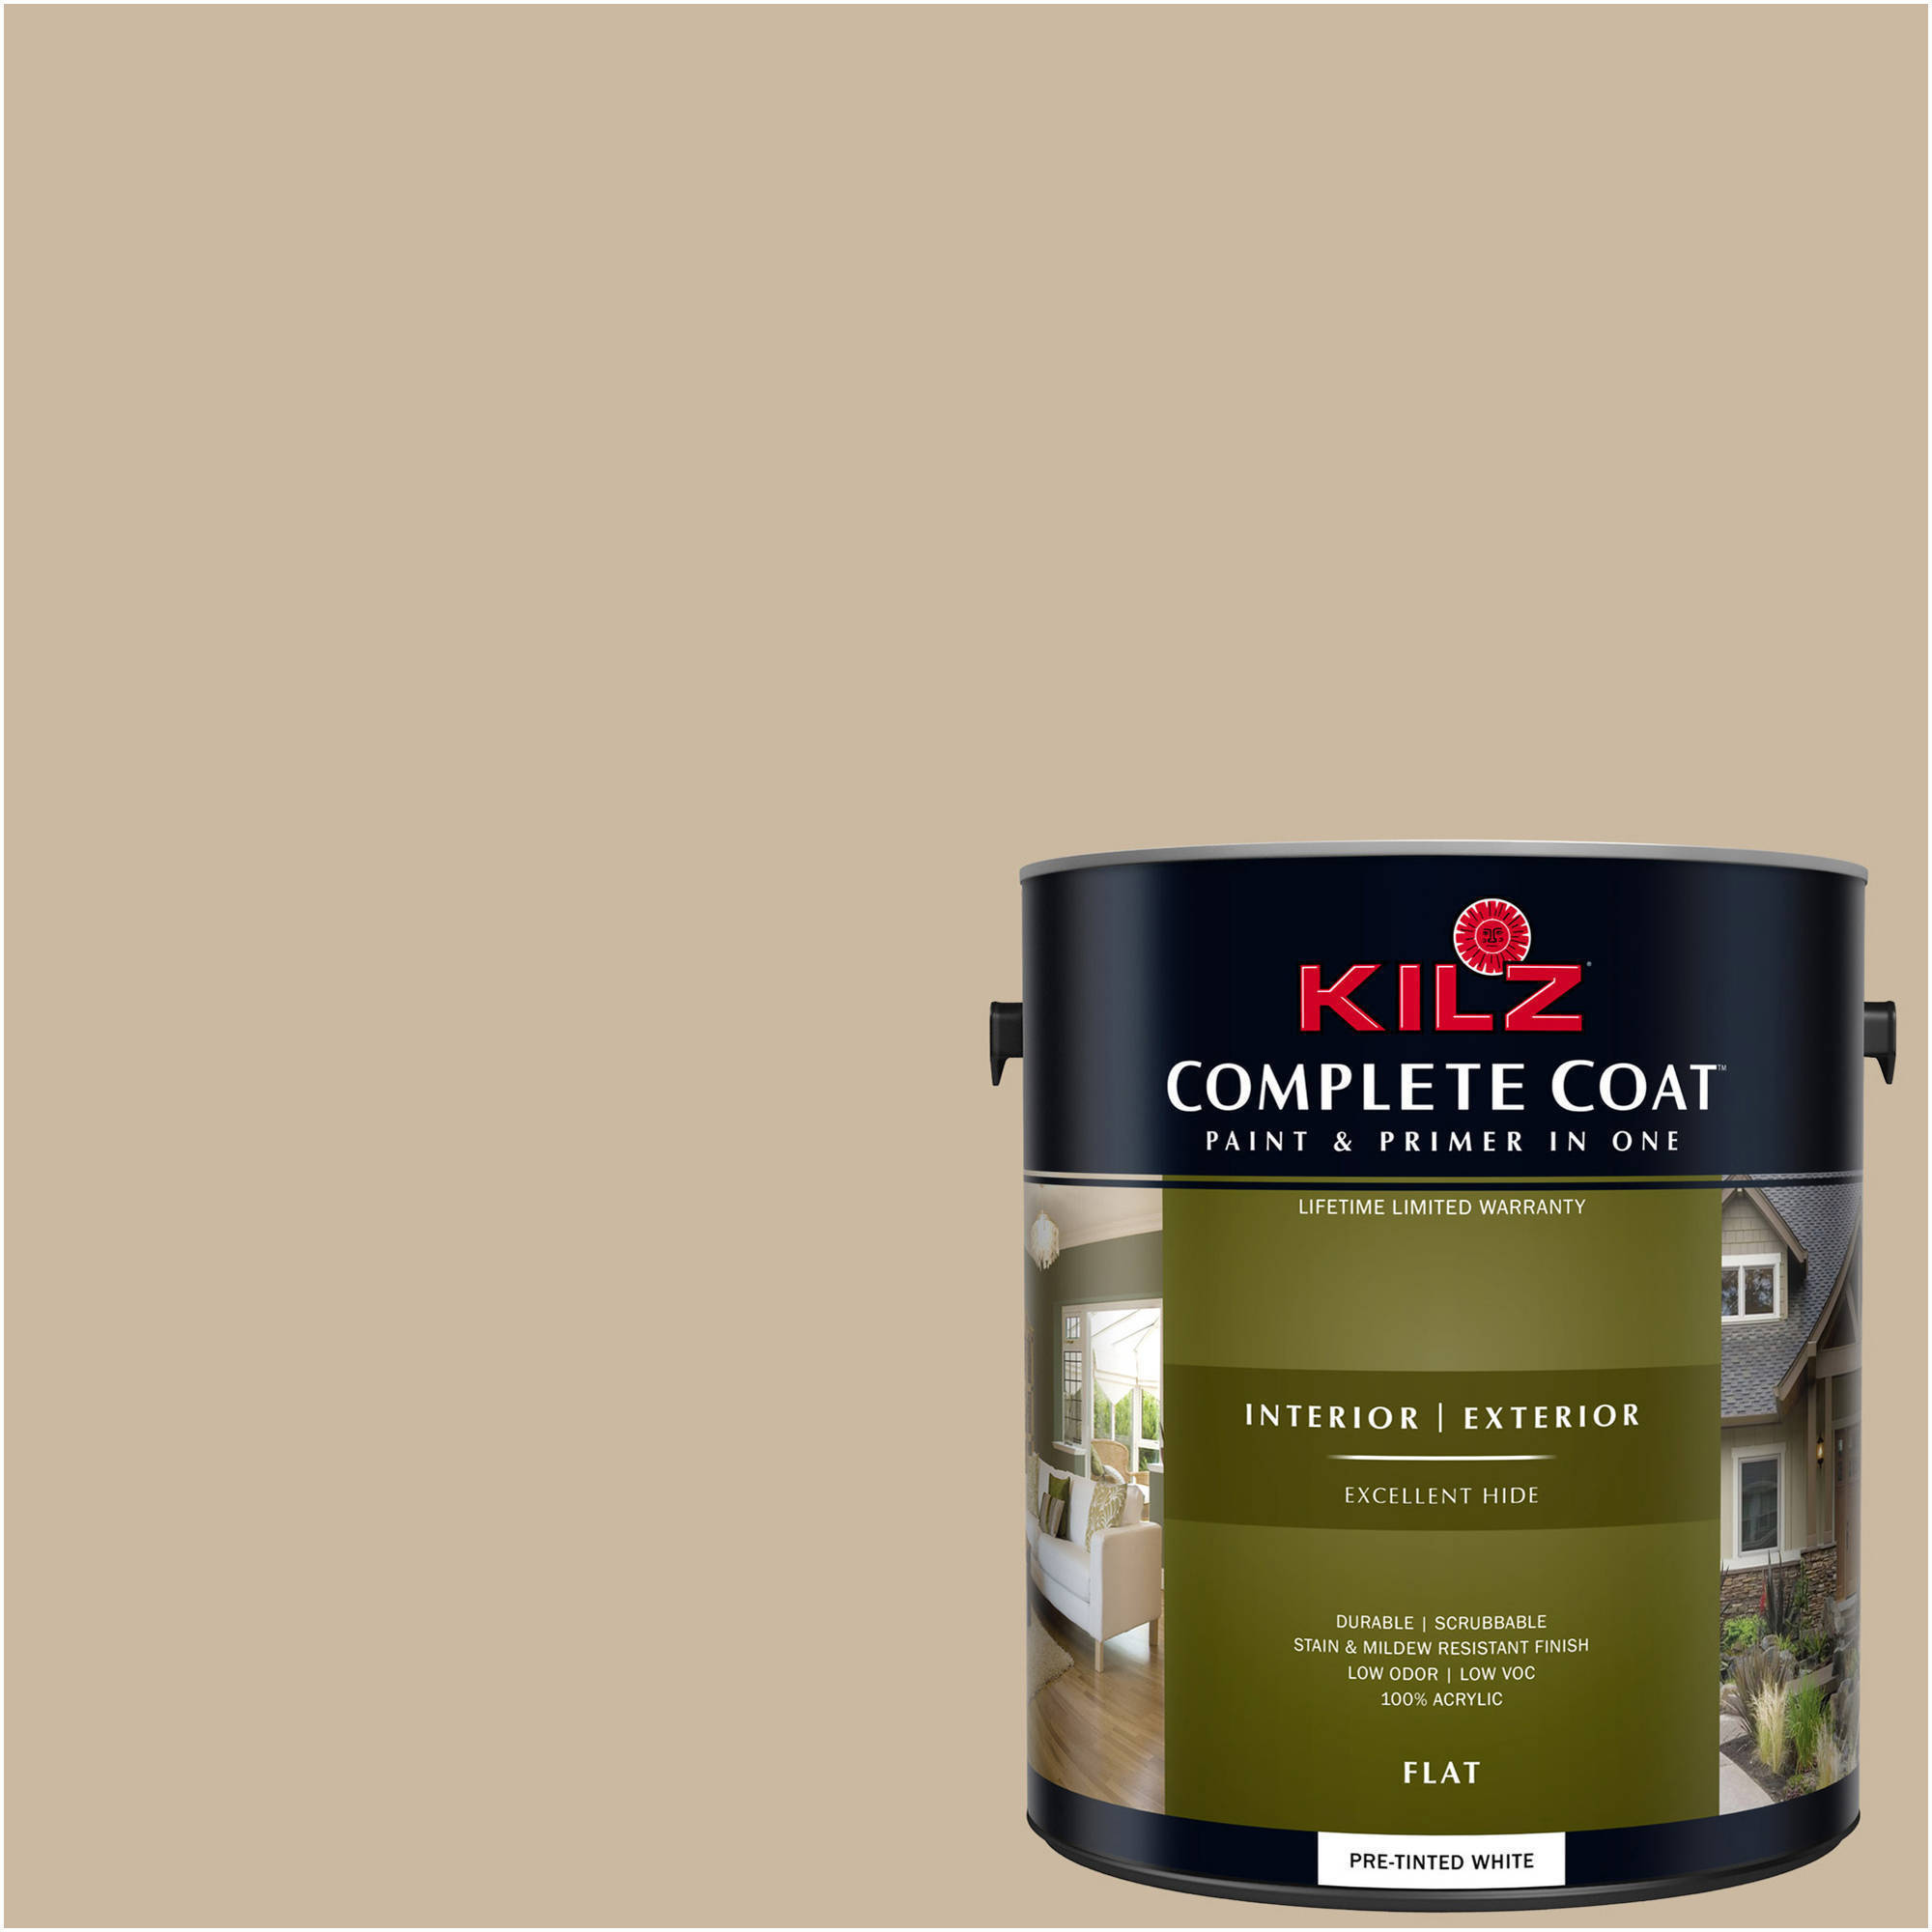 KILZ COMPLETE COAT Interior/Exterior Paint & Primer in One #LK140 Ranch House,  1 gal,  Flat